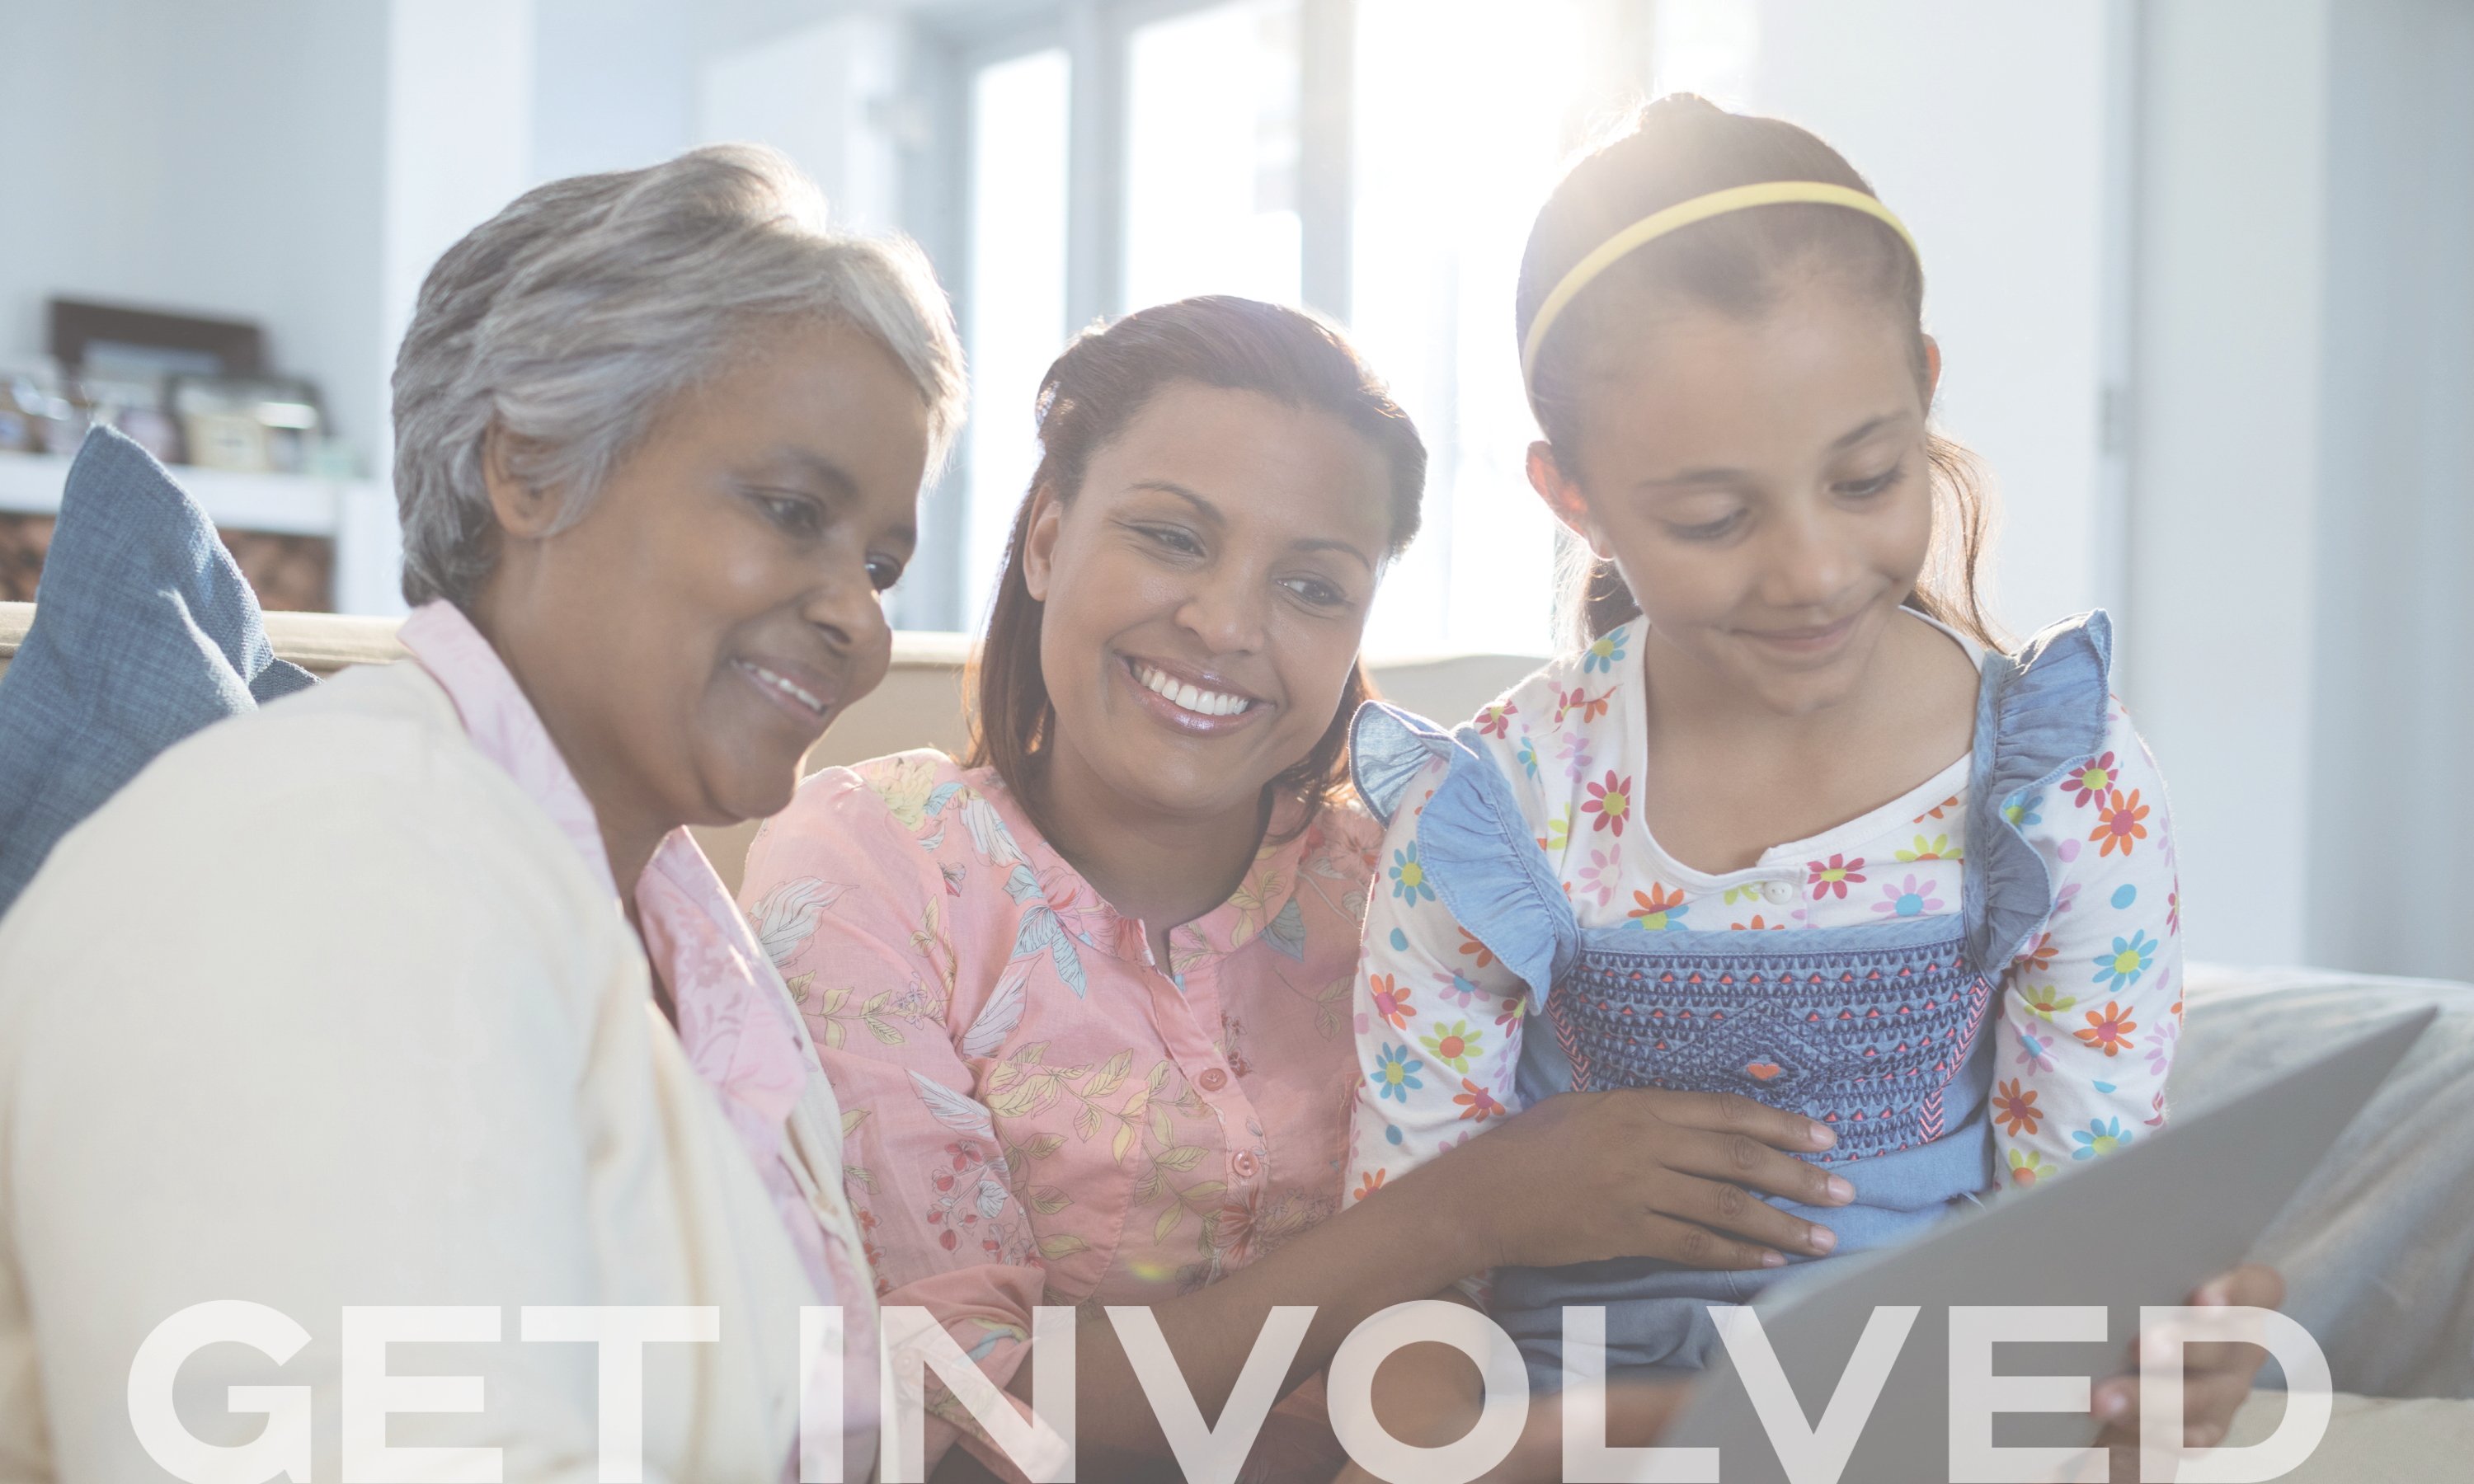 Get involved header: A family of three sit on a couch and are looking at a laptop together